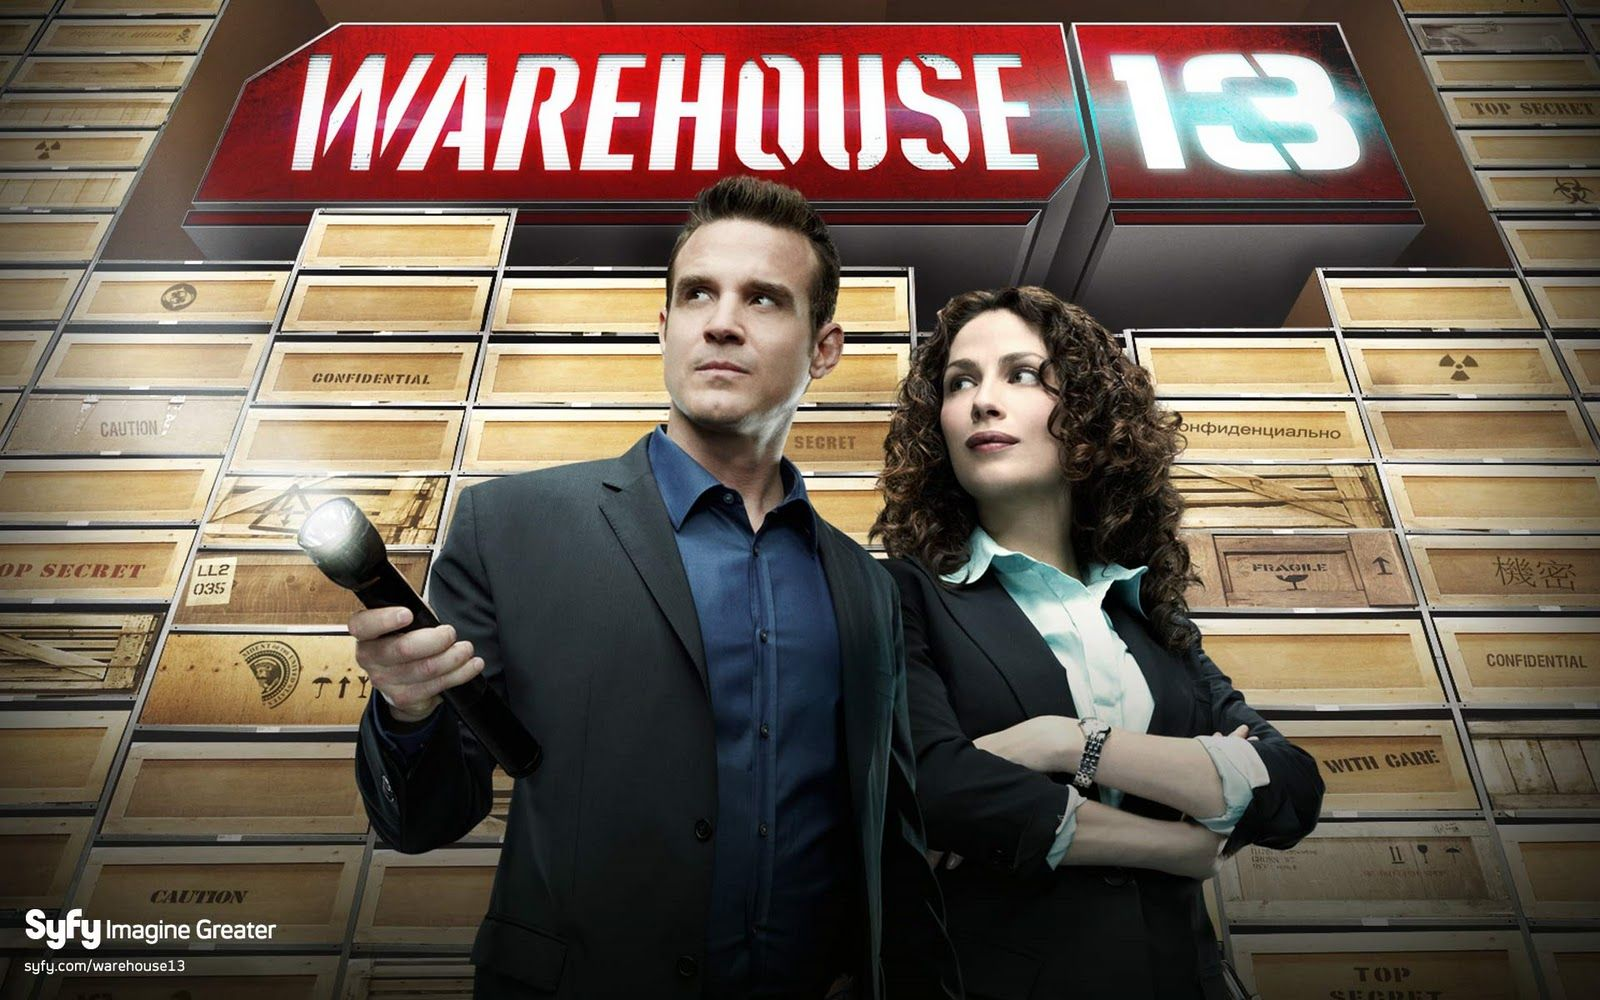 Kelly Warehouse Warehouse 13 Syfy Network Warehouse 13 Warehouse